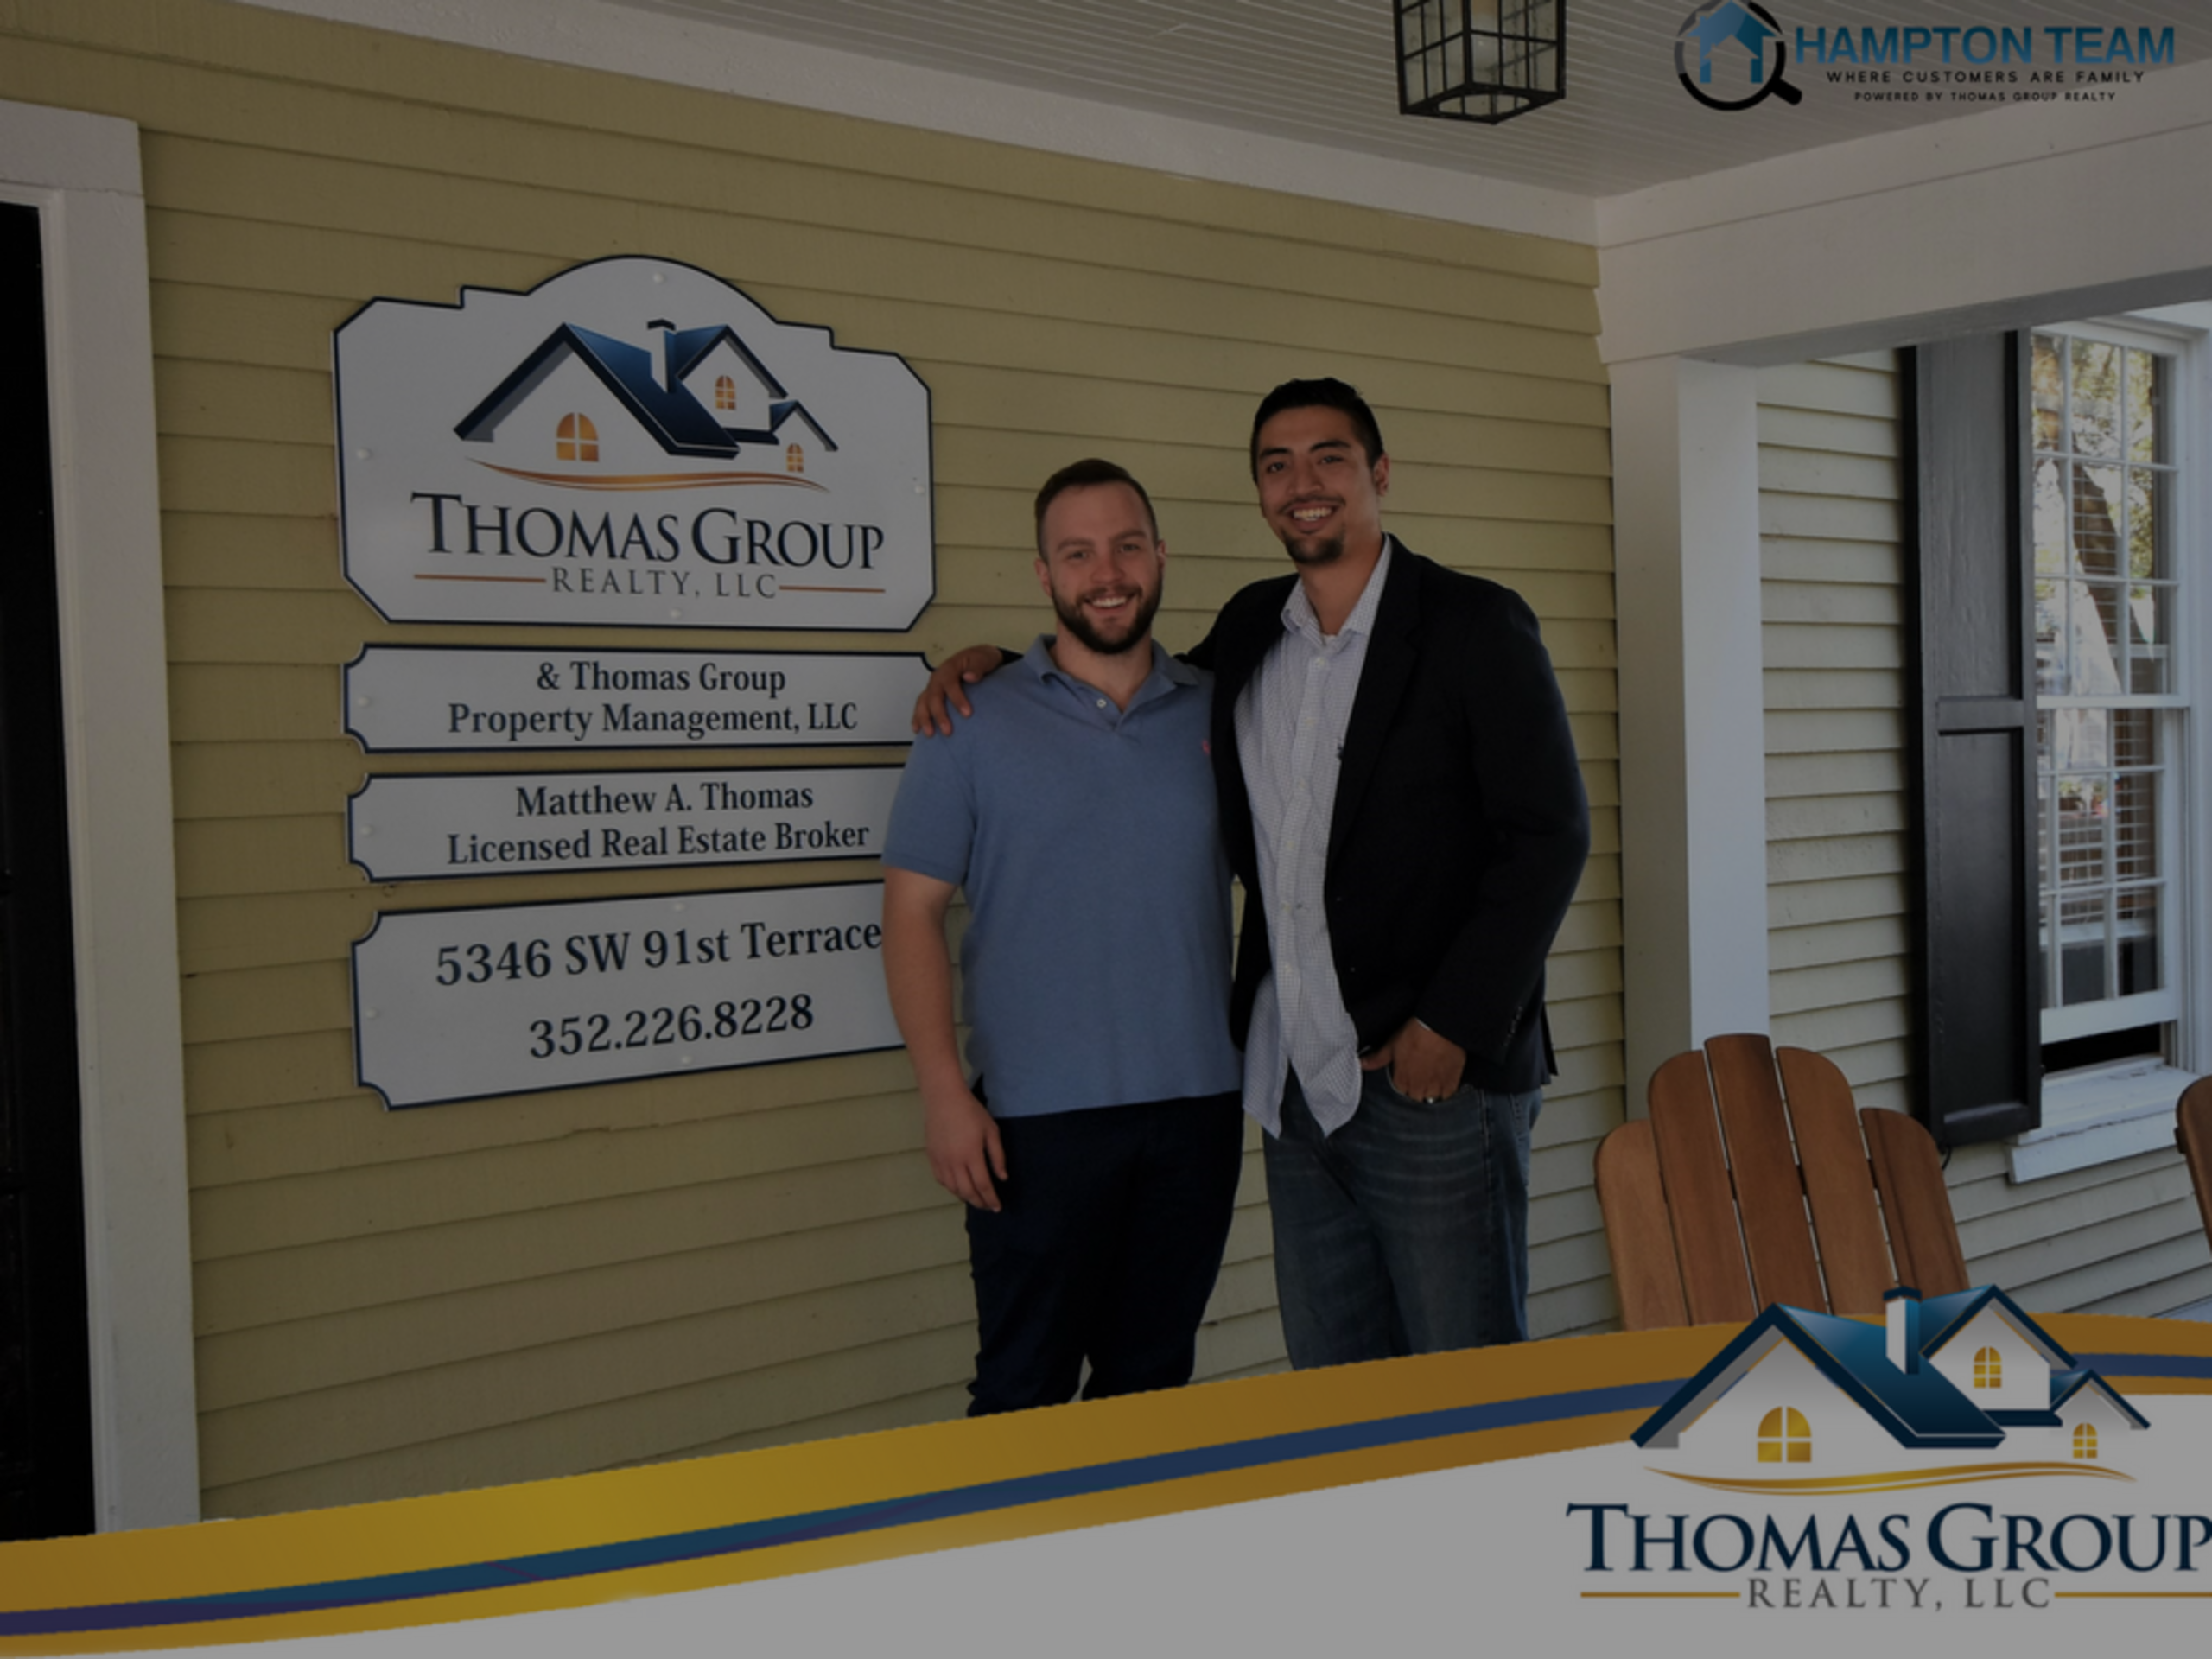 Hampton Team welcomes new office manager and Realtor®